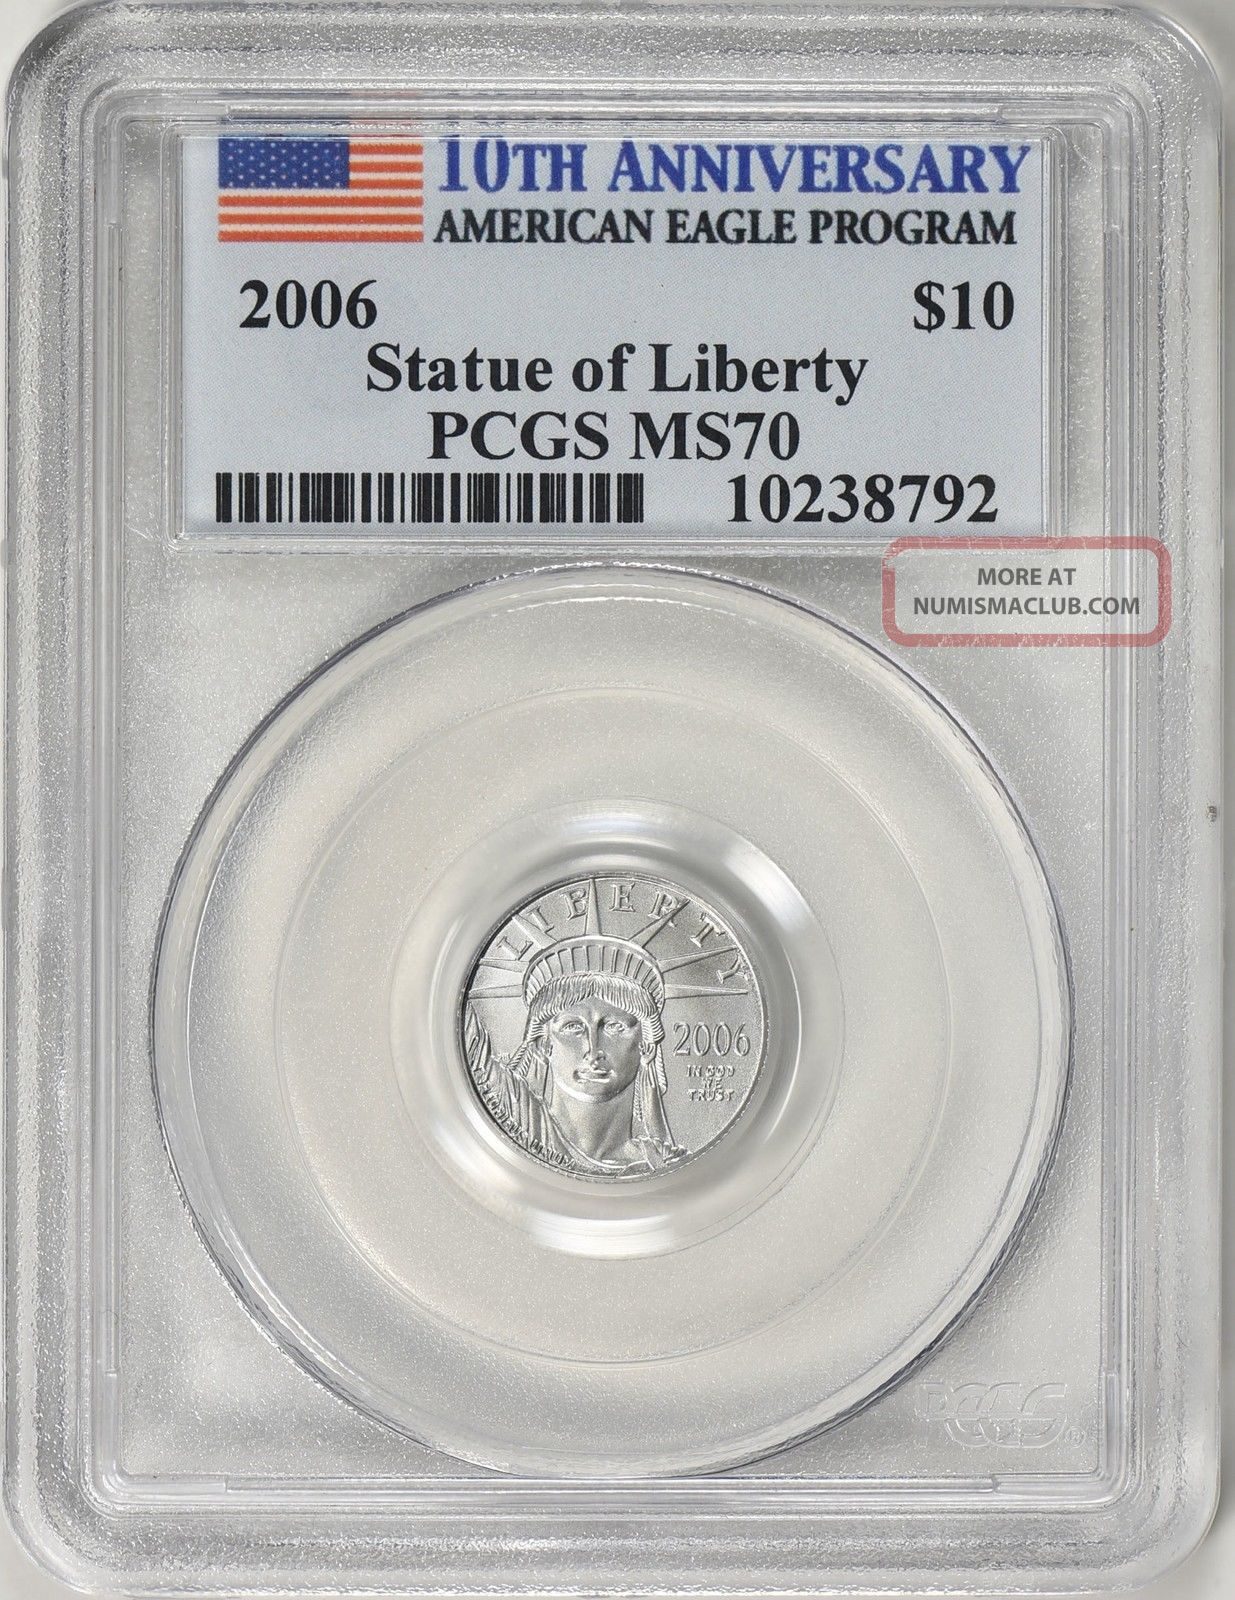 2006 $10 Tenth - Ounce Platinum American Eagle 10th Anniversary Pcgs Ms - 70 Coin Platinum photo